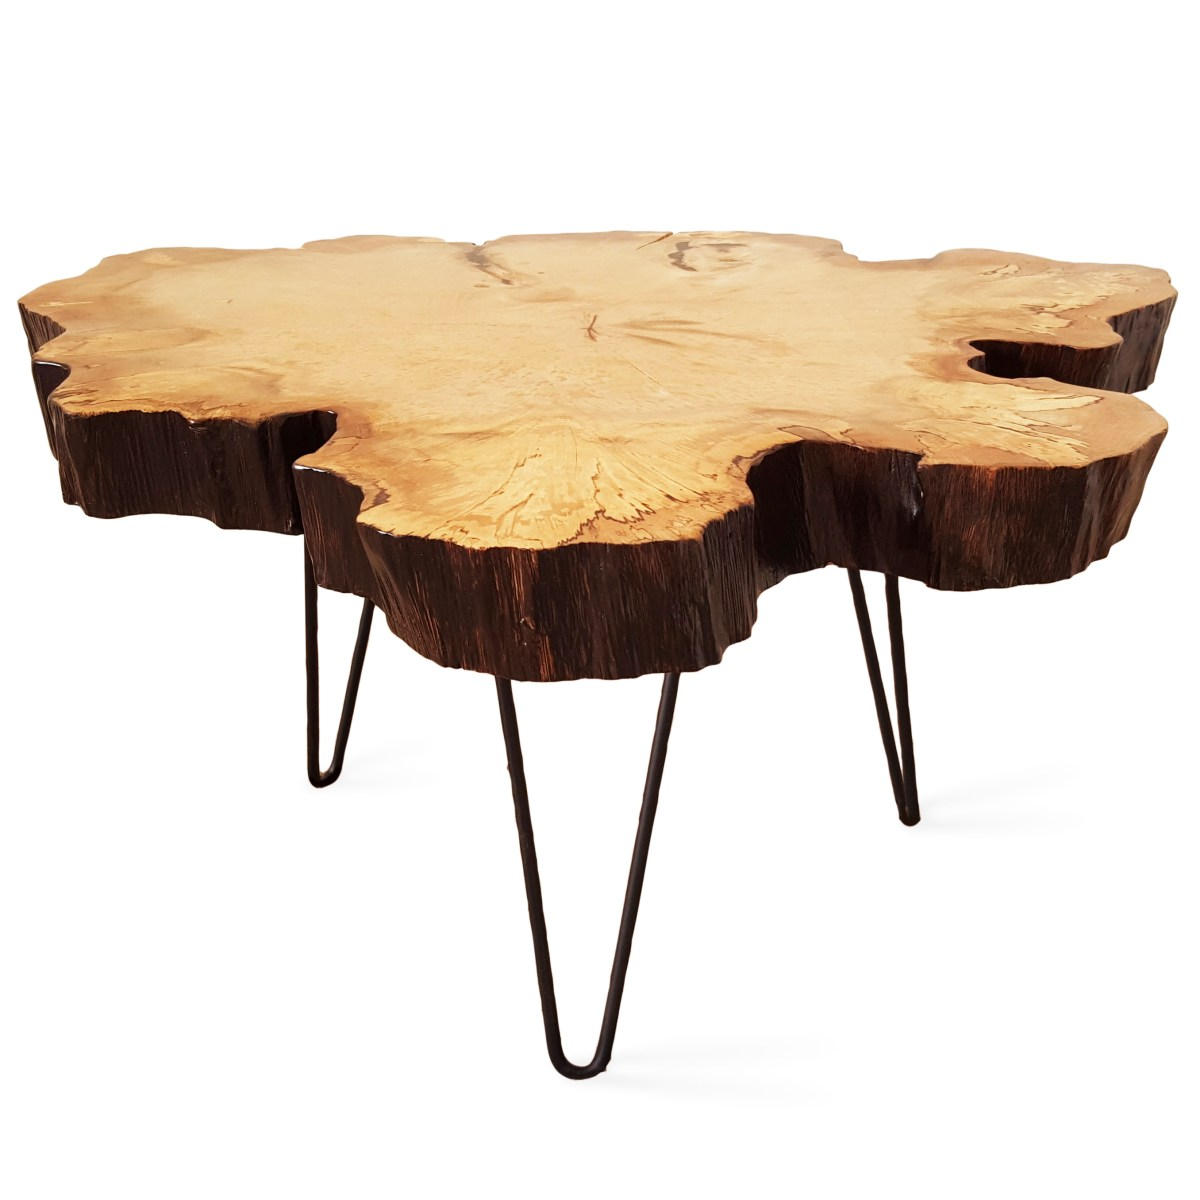 Spalted Hornbeam Slice Coffee Table With Hairpins Handmade In Brighton